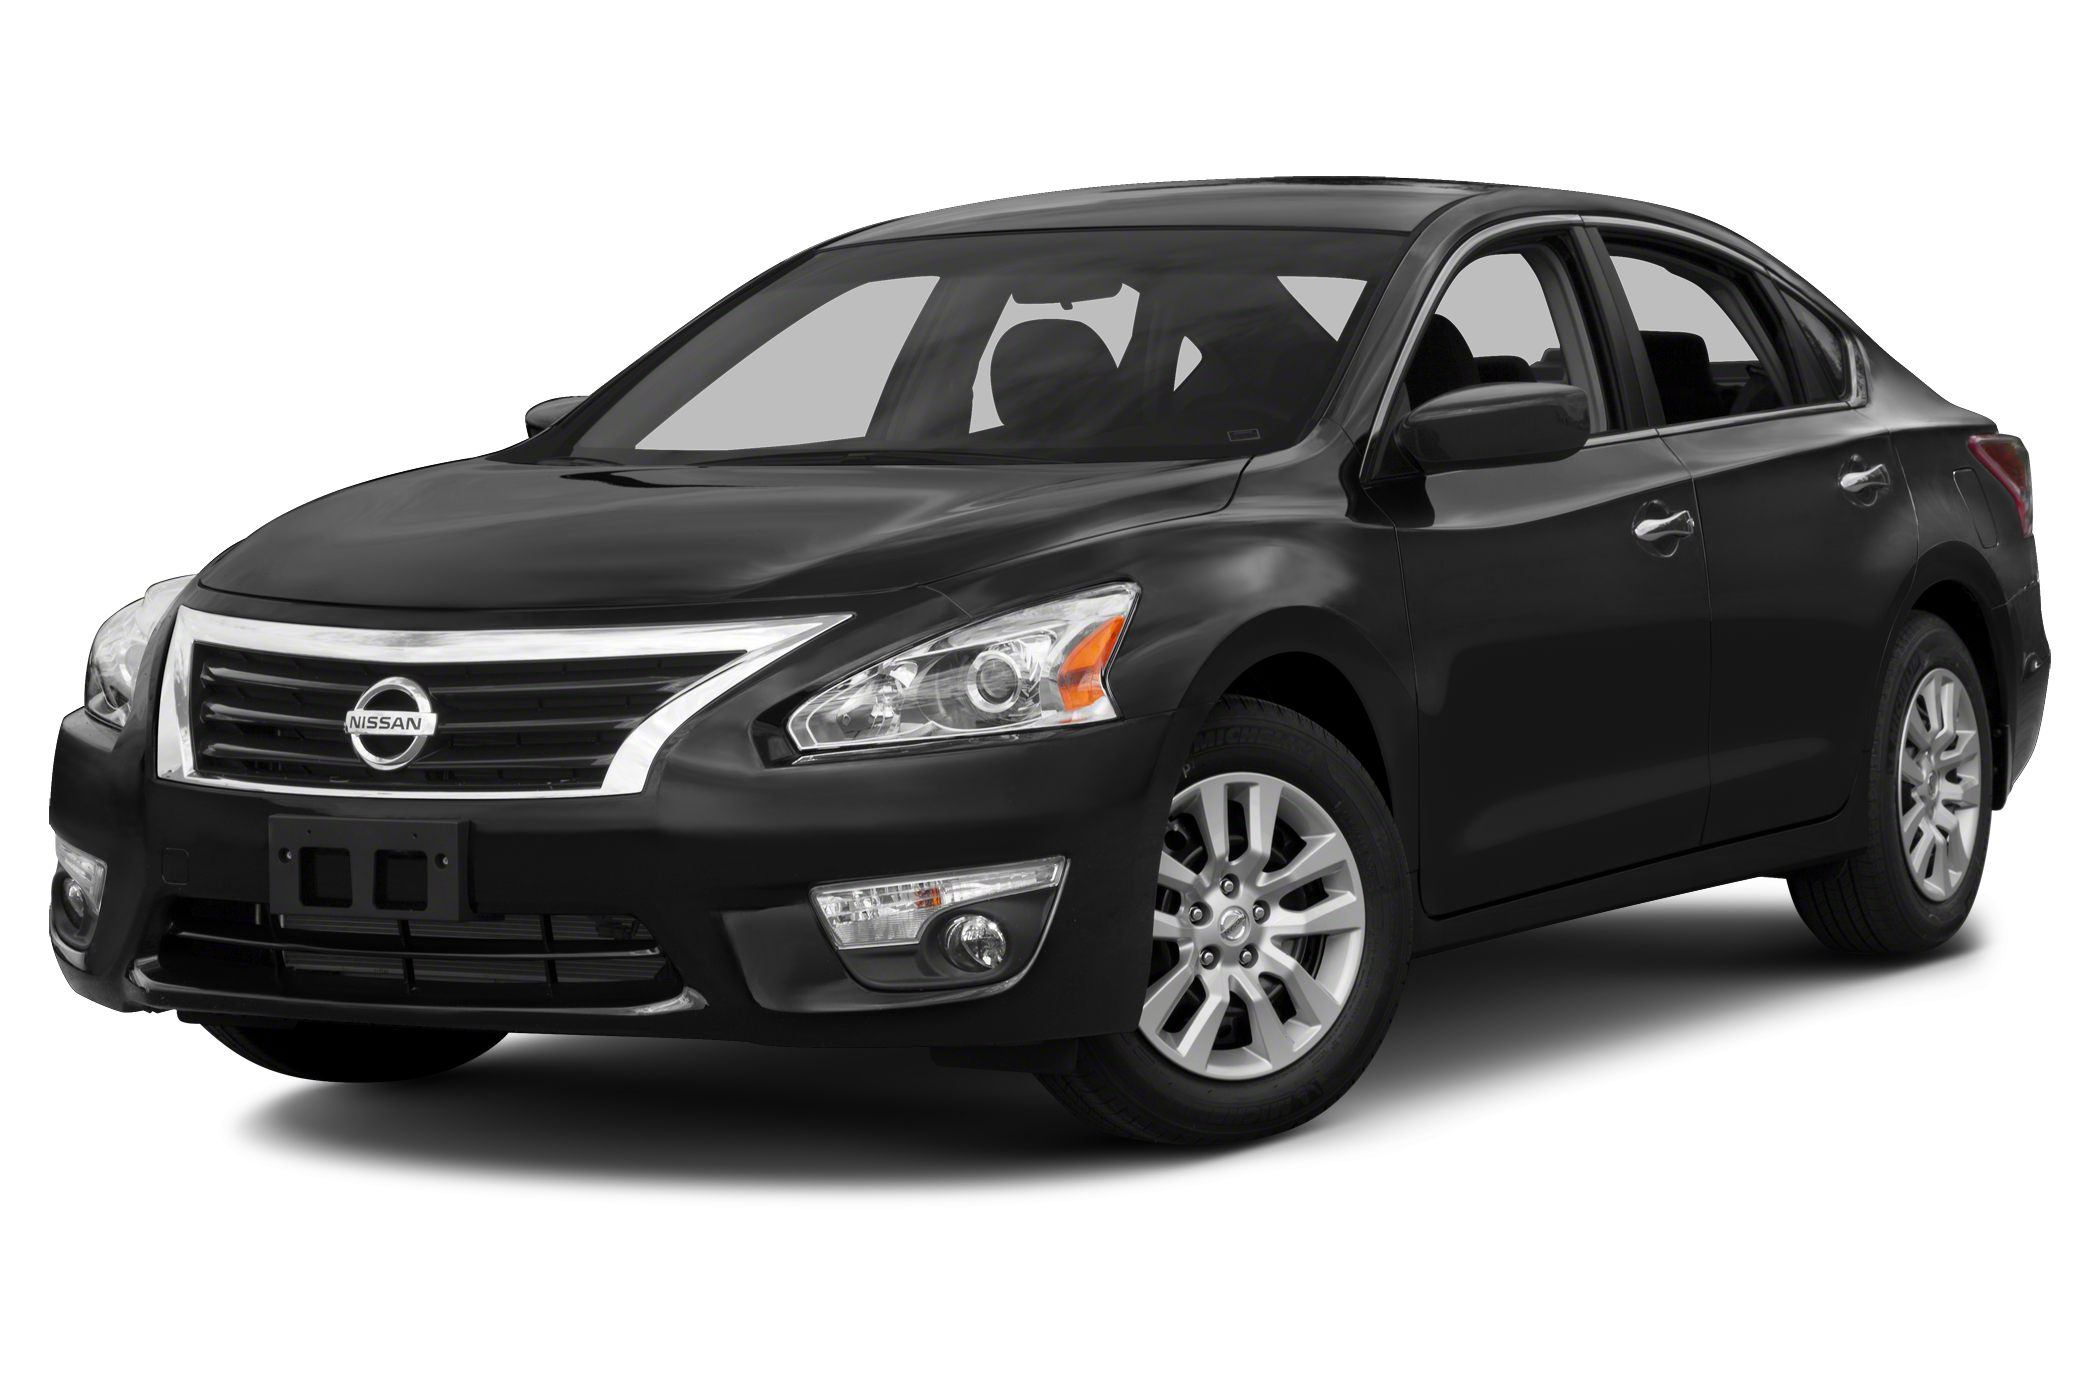 2013 Nissan Altima 2.5 S Sedan for sale in Woodville for $14,654 with 52,730 miles